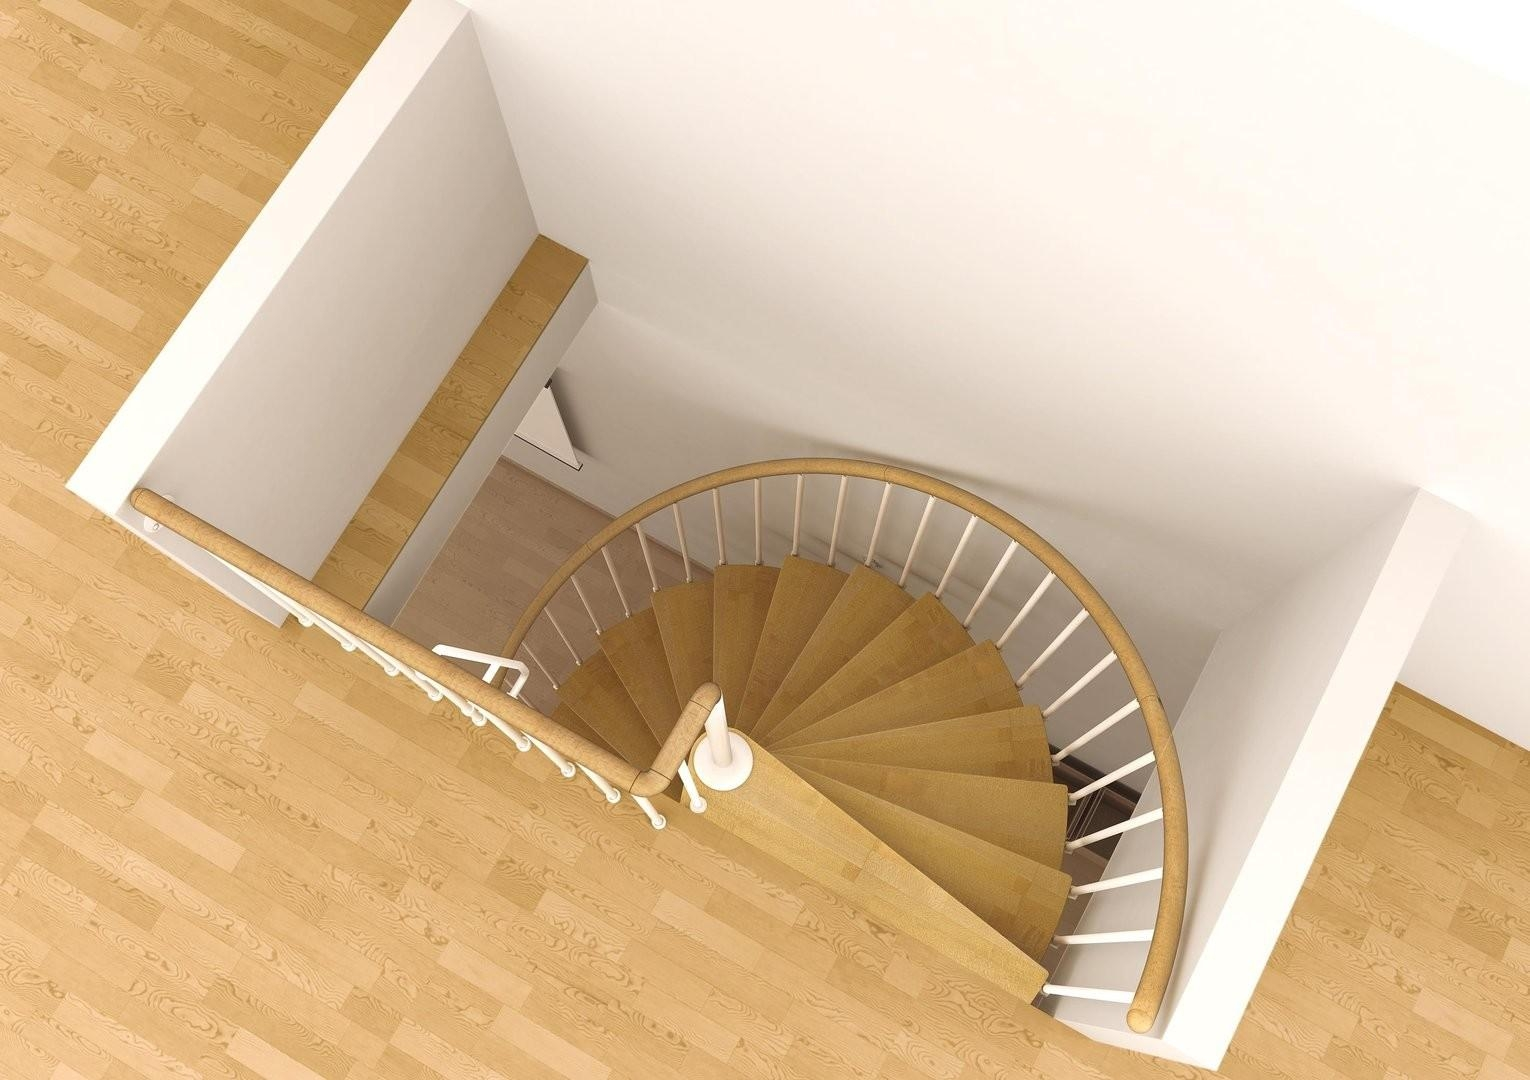 Space Saving Spiral Staircase Type Toscana L00L Stairs | Space Saving Stairs Design | Storage | Small Space | Cute | Low Cost | 2Nd Floor Small Terrace Concrete